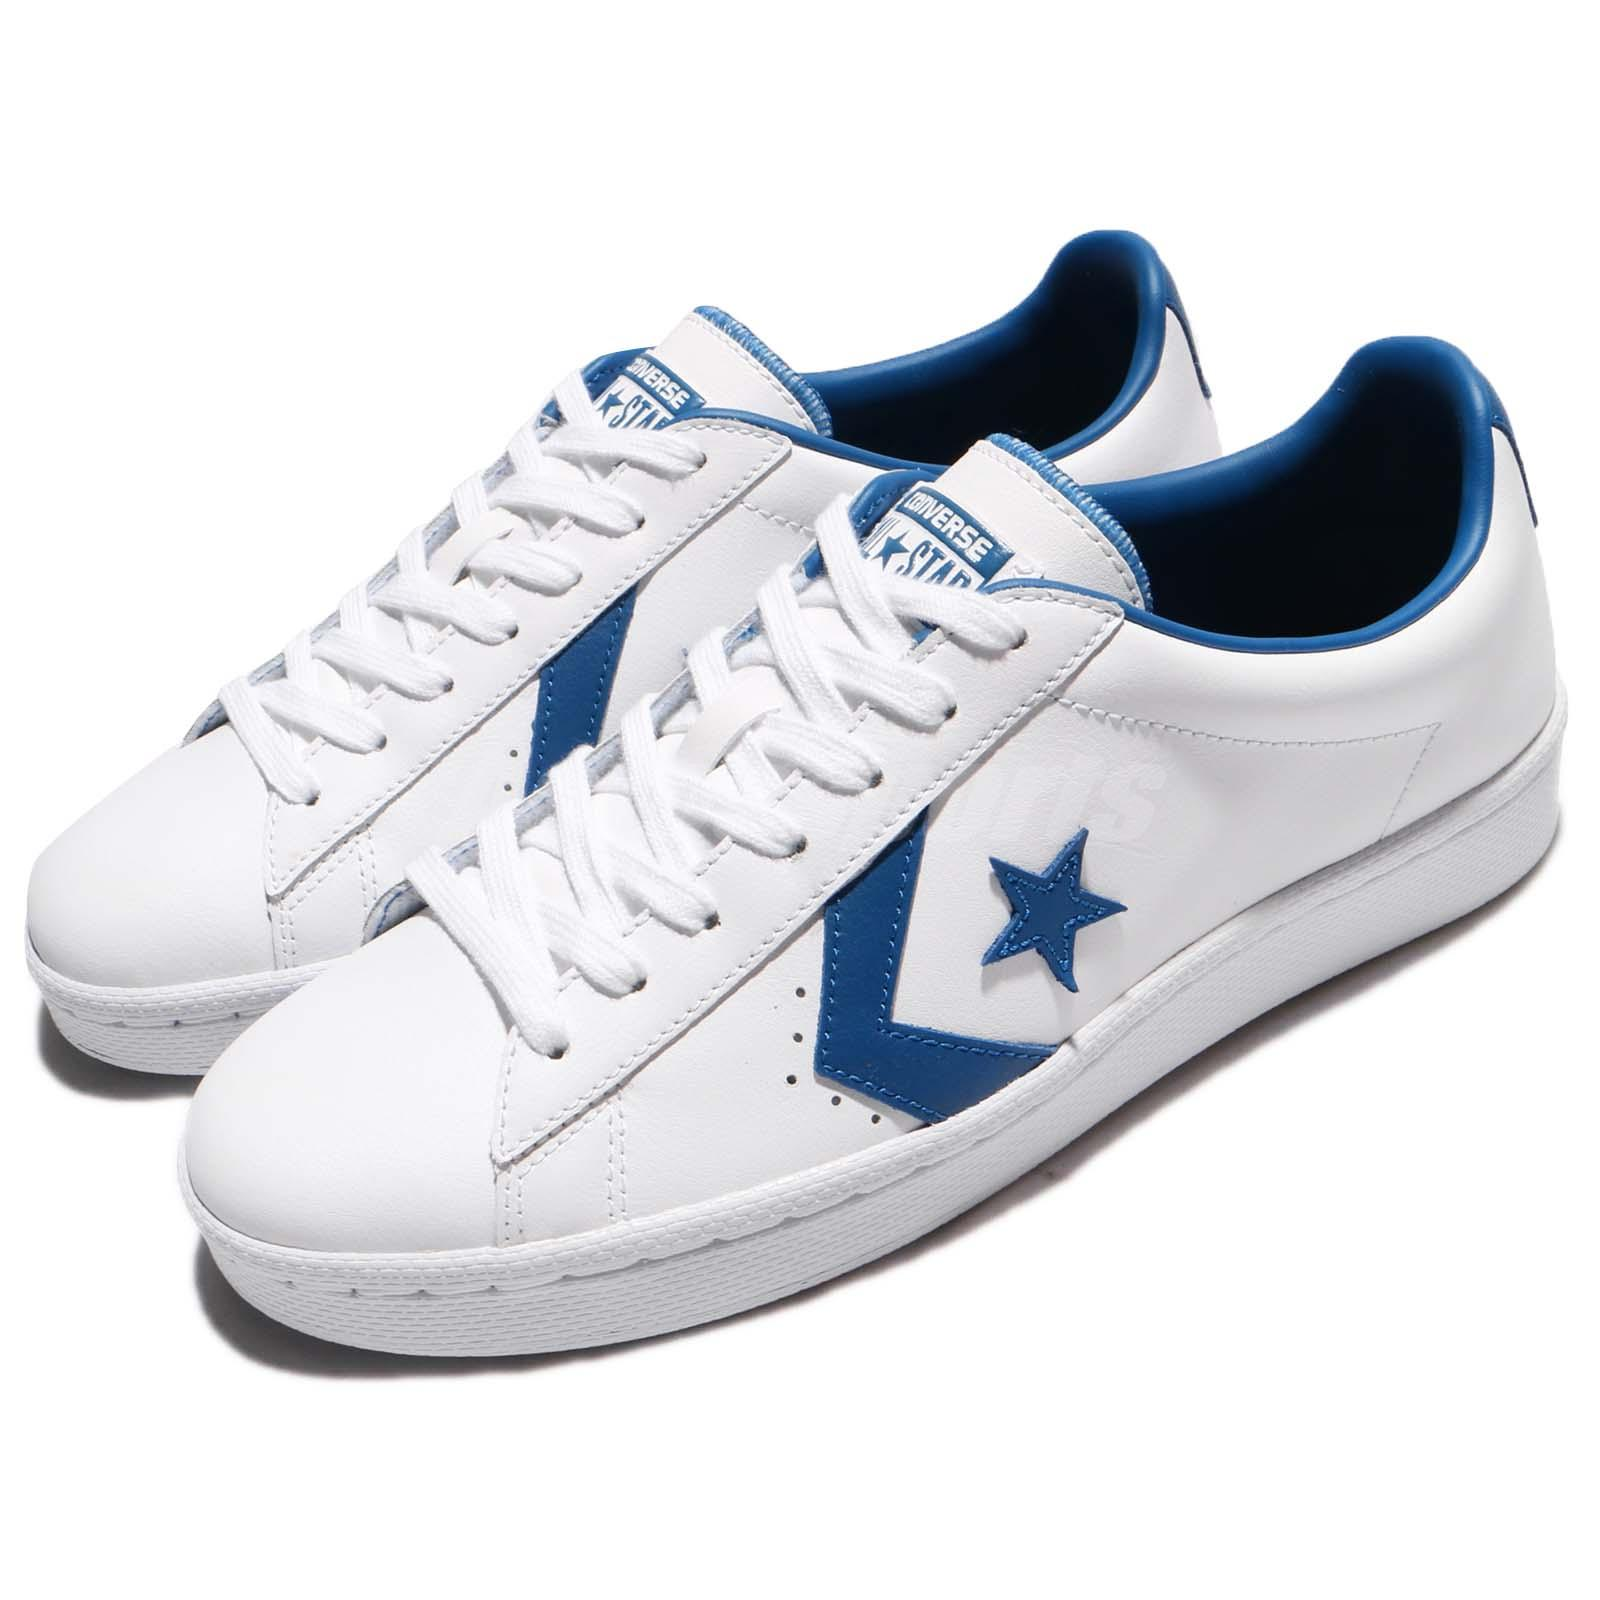 Details about Converse PL 76 Pro Leather White Blue Jay Men Vintage Shoes  Sneakers 157807C 6b36e2b1f